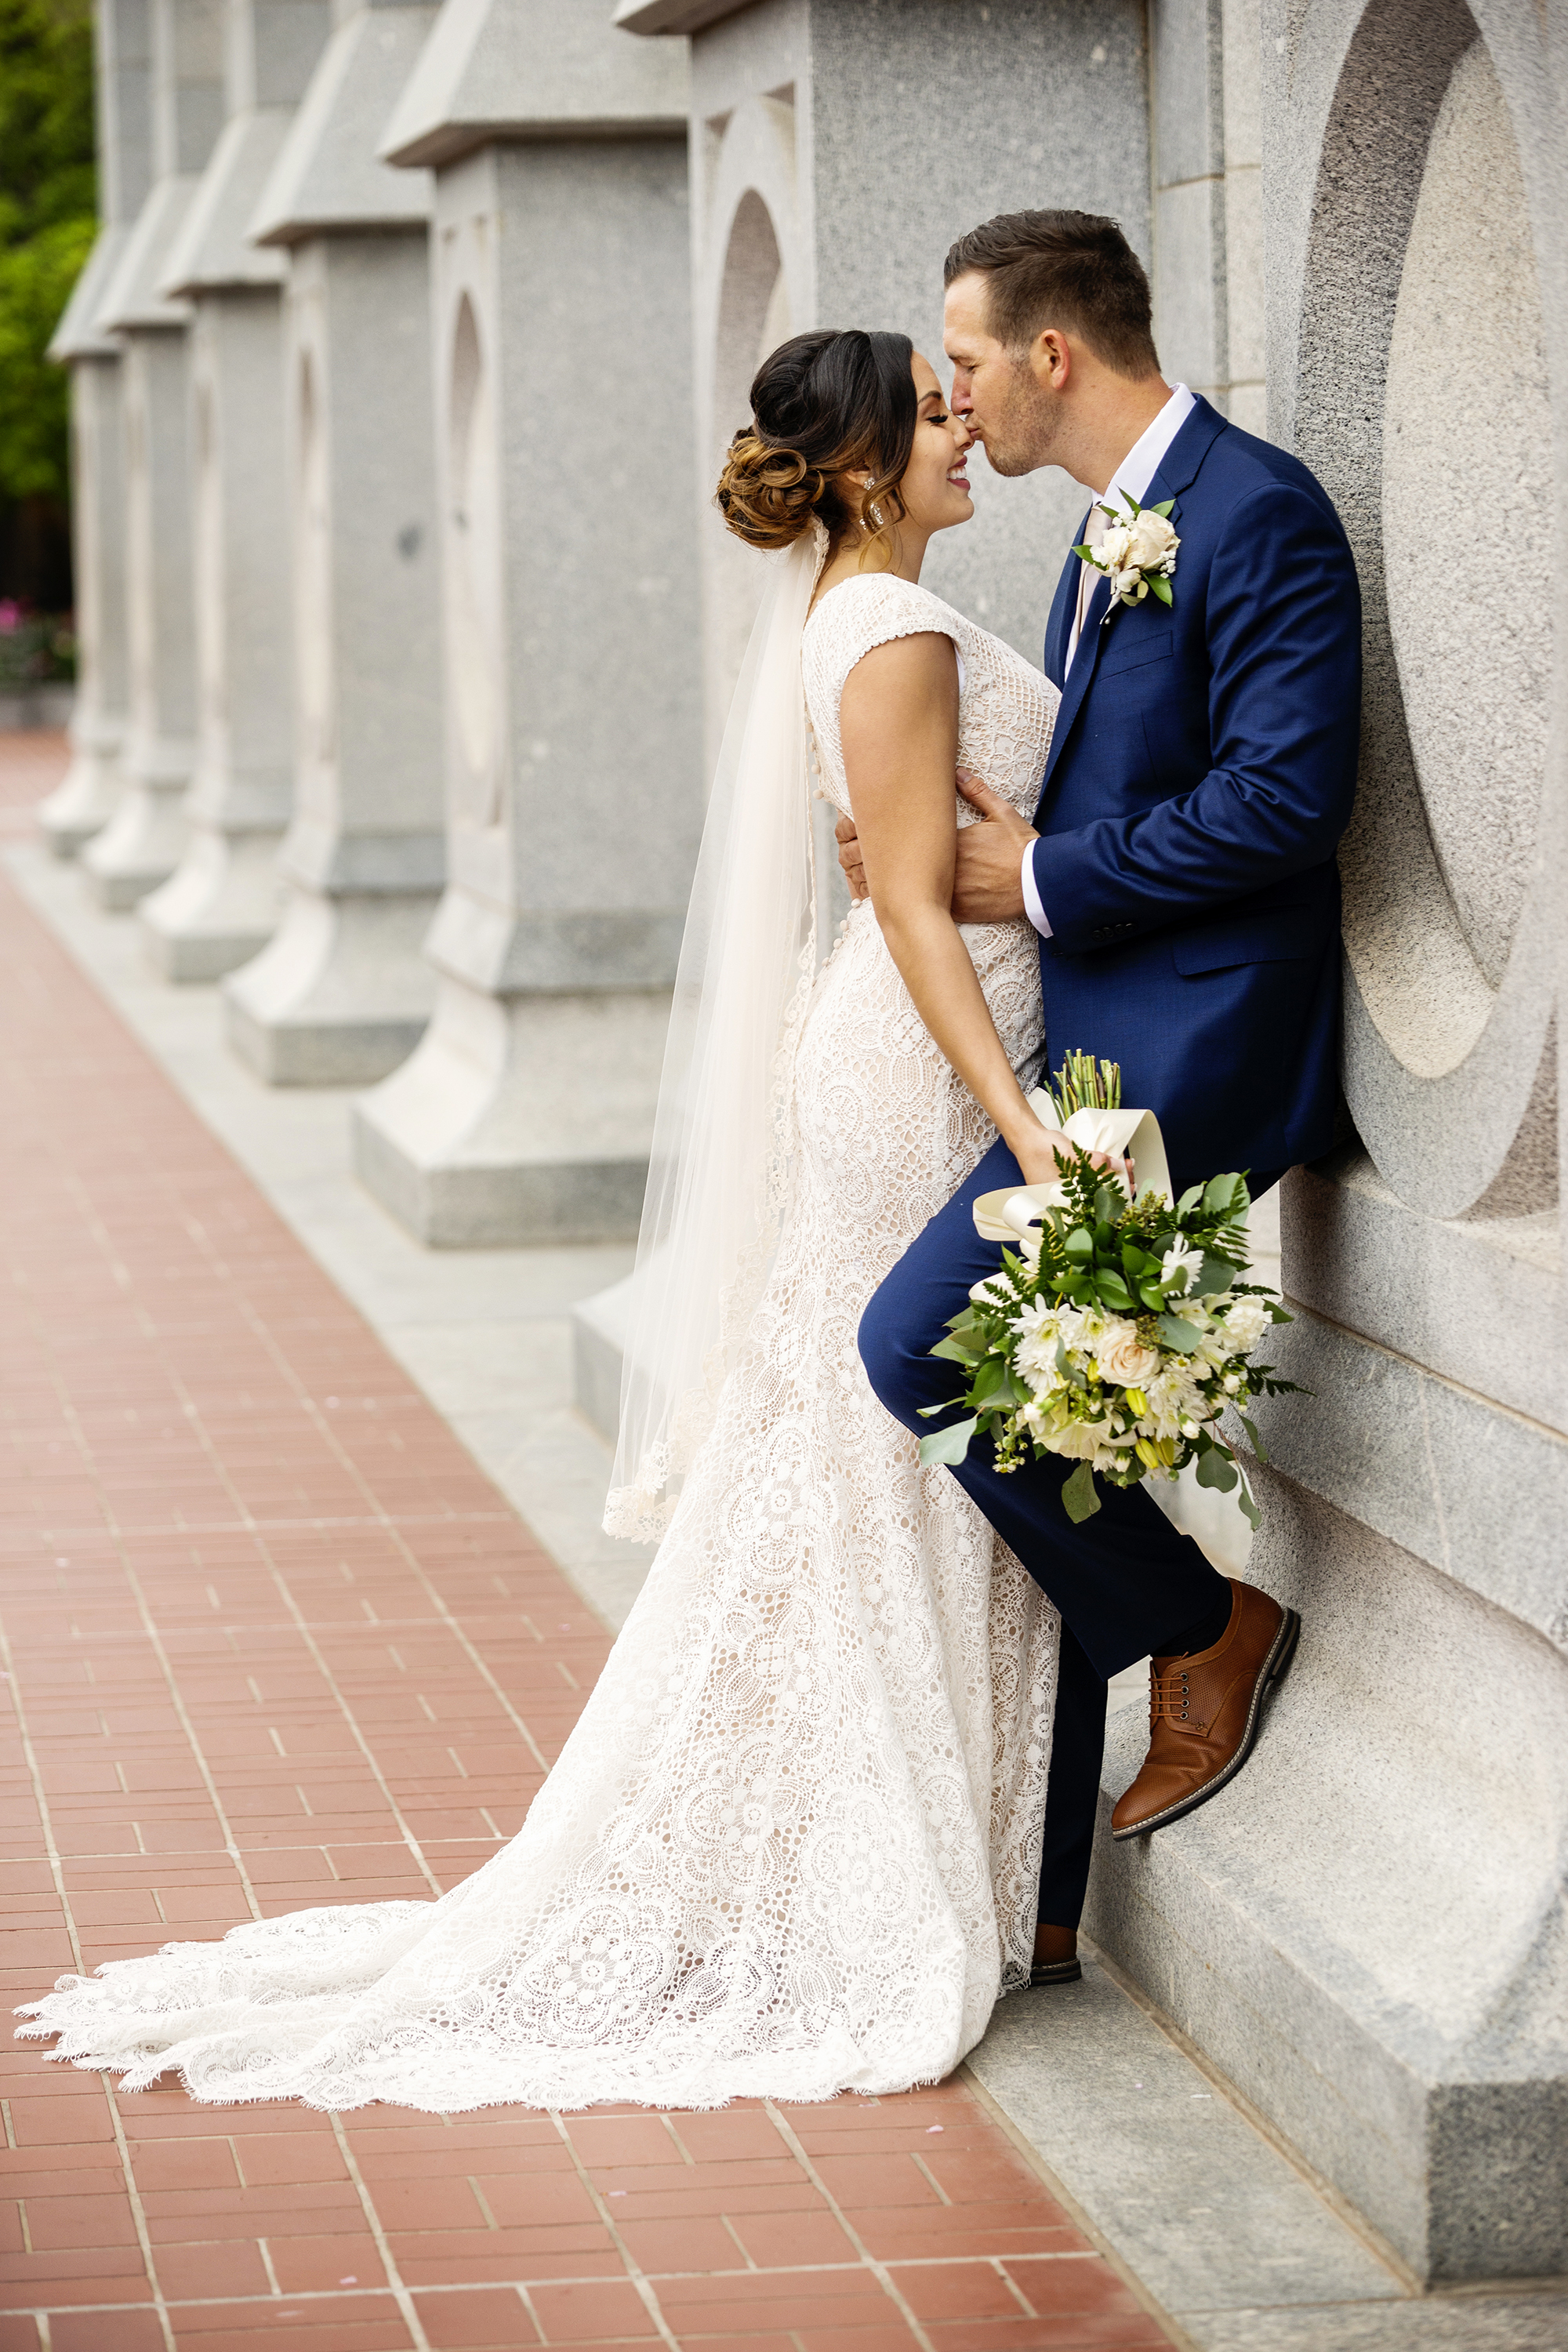 Groom kissing bride and nose